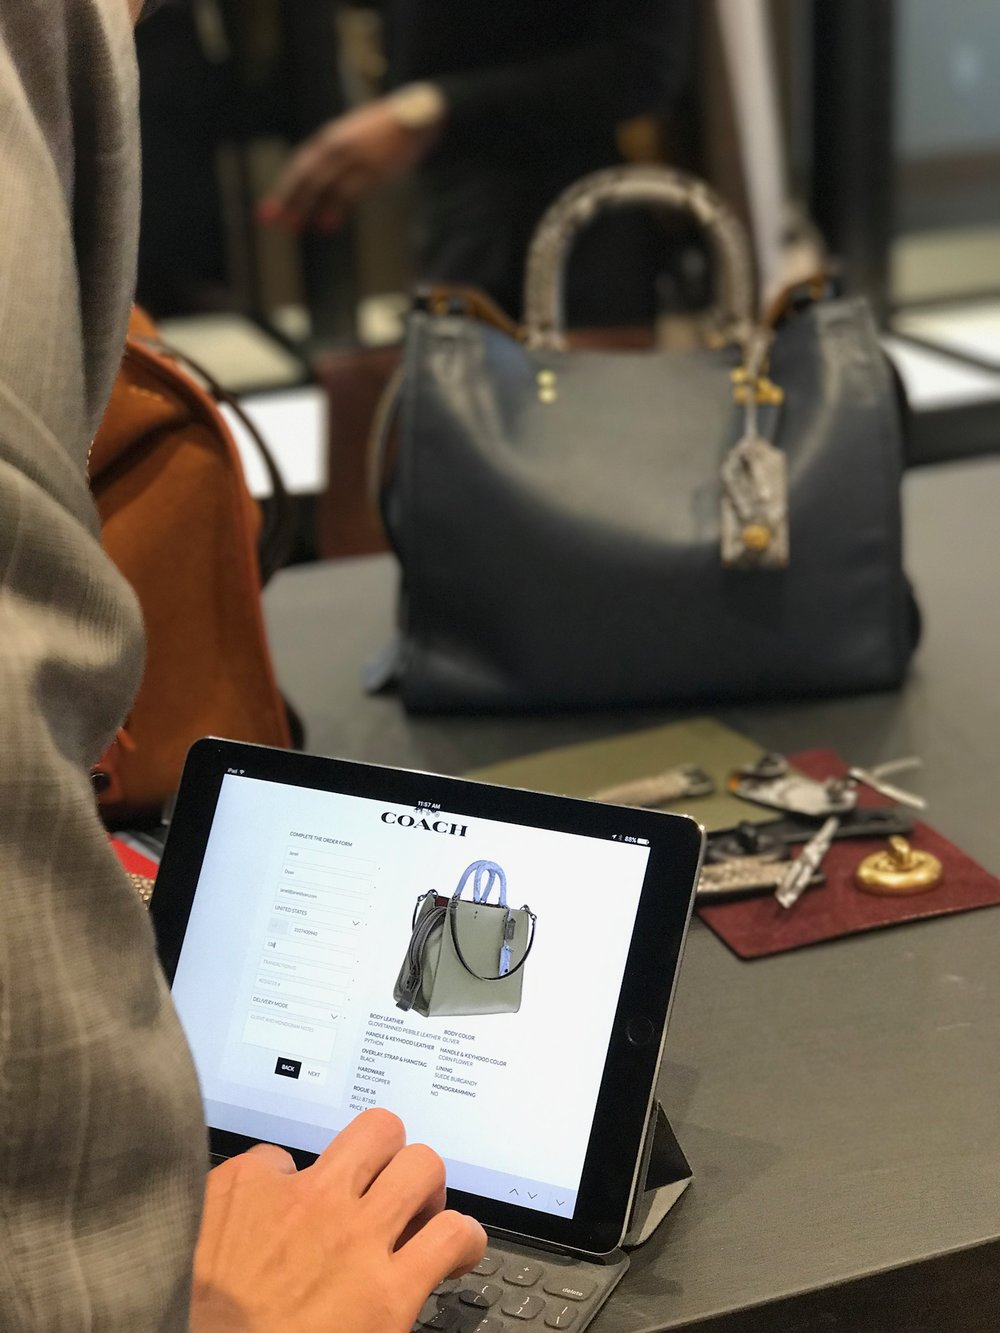 Coach's latest venture merges fashion with technology for a special Made-to-Order experience.